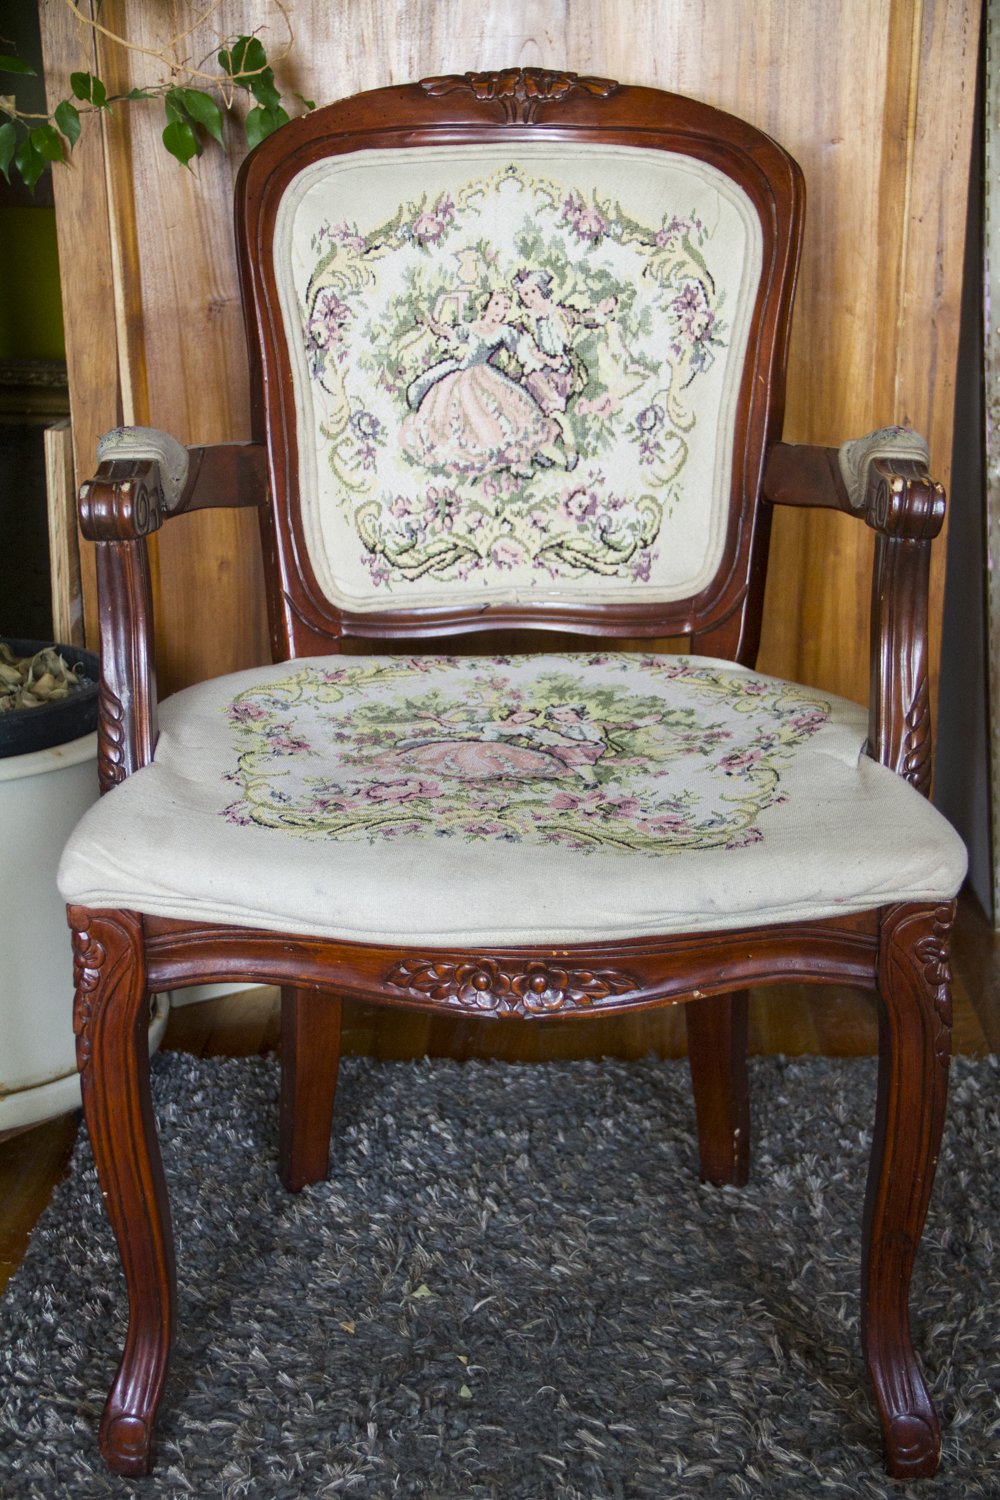 - Antique Queen Anne Chair With Embroidered Cushions — Real Good Goods Co.